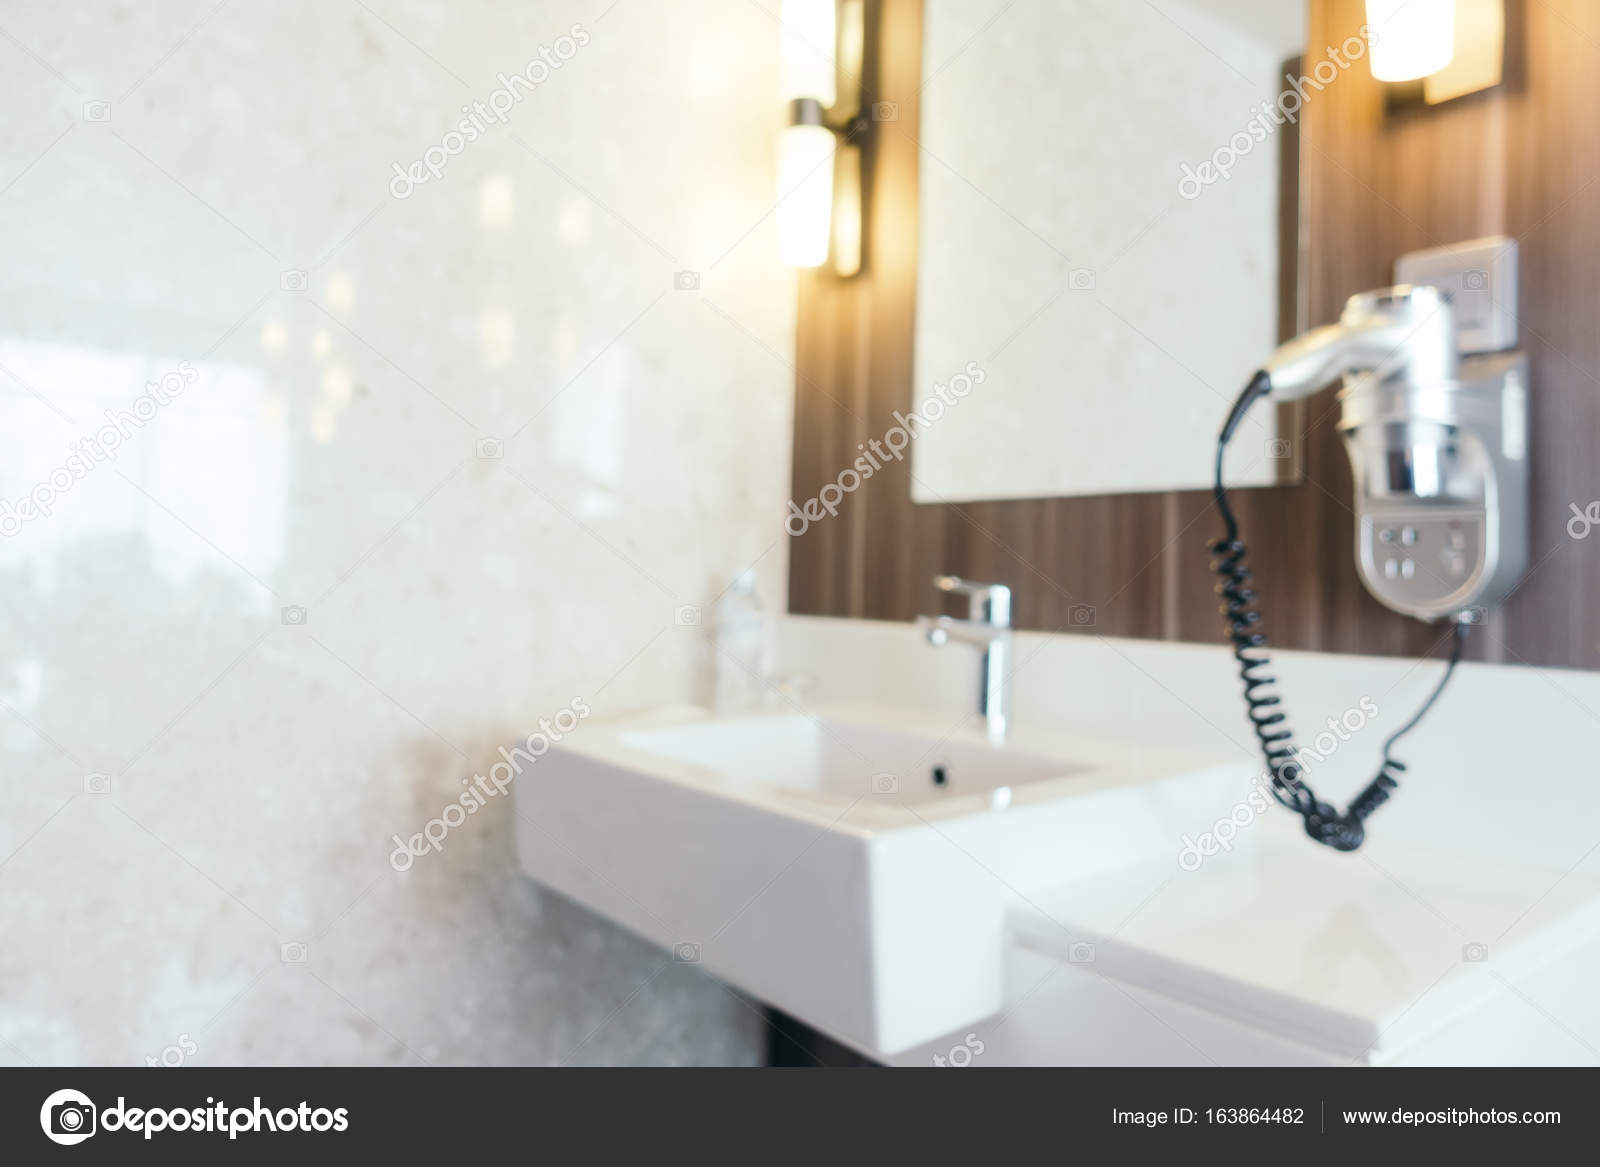 Deco wc chic meilleur de decoration d interieur idee beautiful